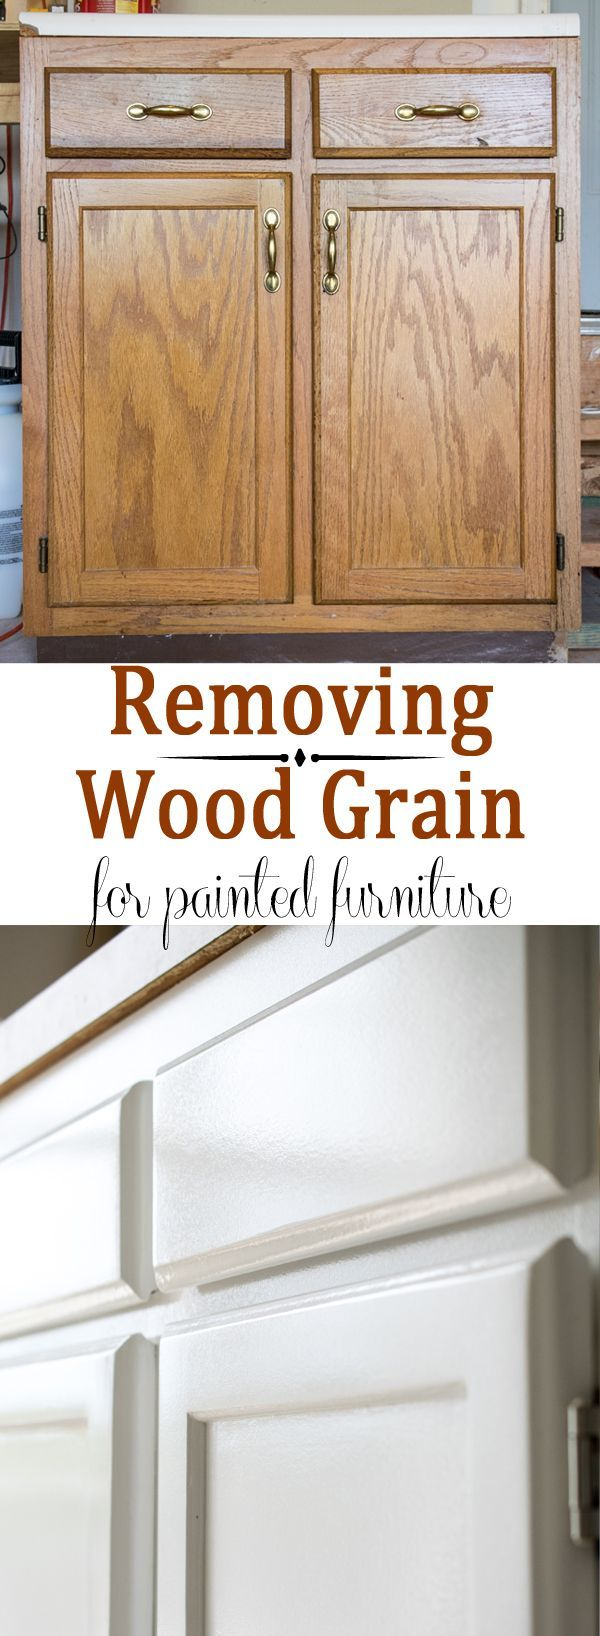 How To Remove Wood Grain Old Kitchen Cabinets Painting Oak Cabinets Kitchen Cabinets Makeover